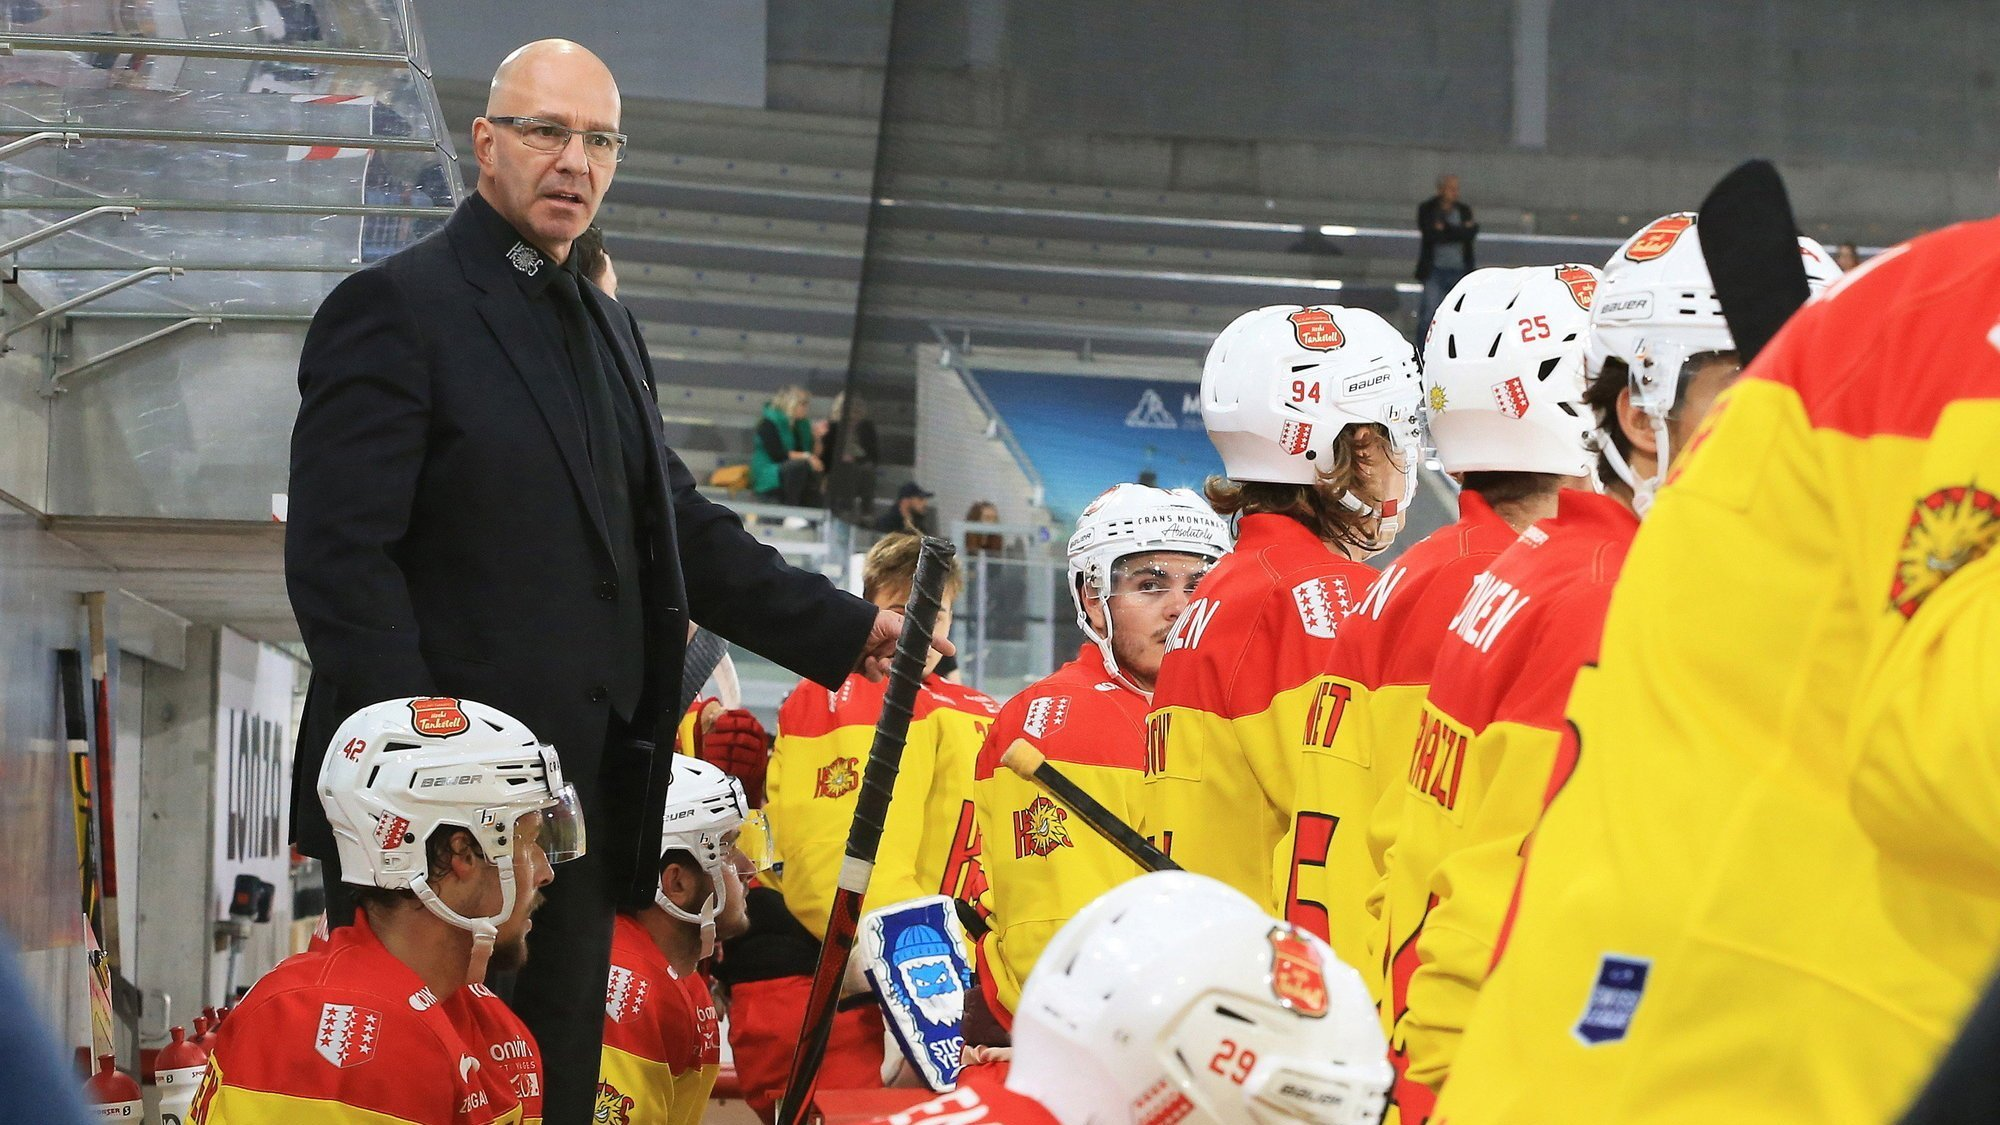 Dany Gelinas devra trouver une solution interne pour remplacer Arnaud Montandon, absent trois semaines.